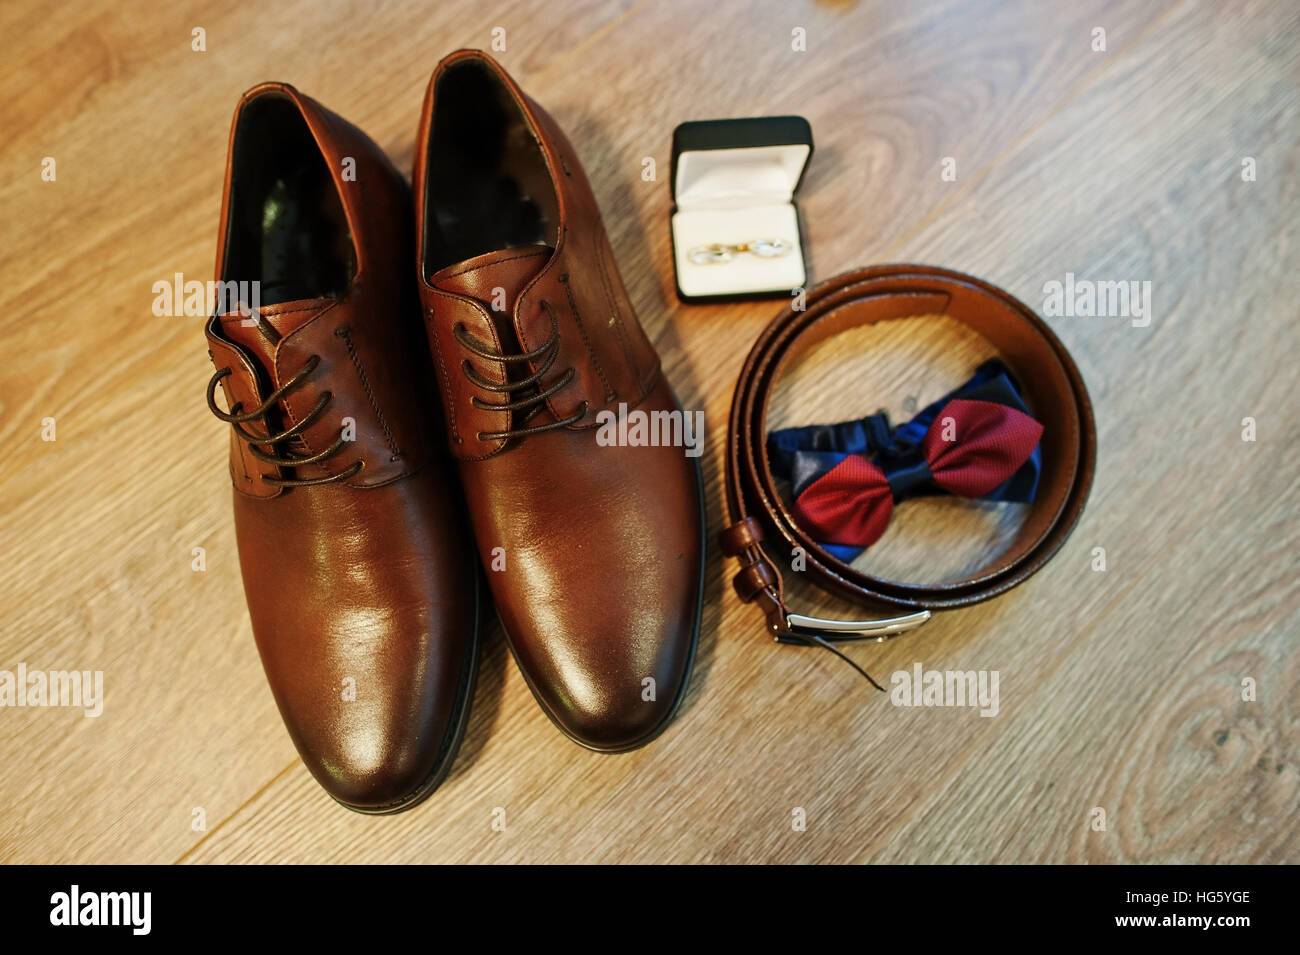 9e97549b7a67 Brown leather men's shoes with belt, bow tie and cufflinks. Set of groom  accessories on wedding day.